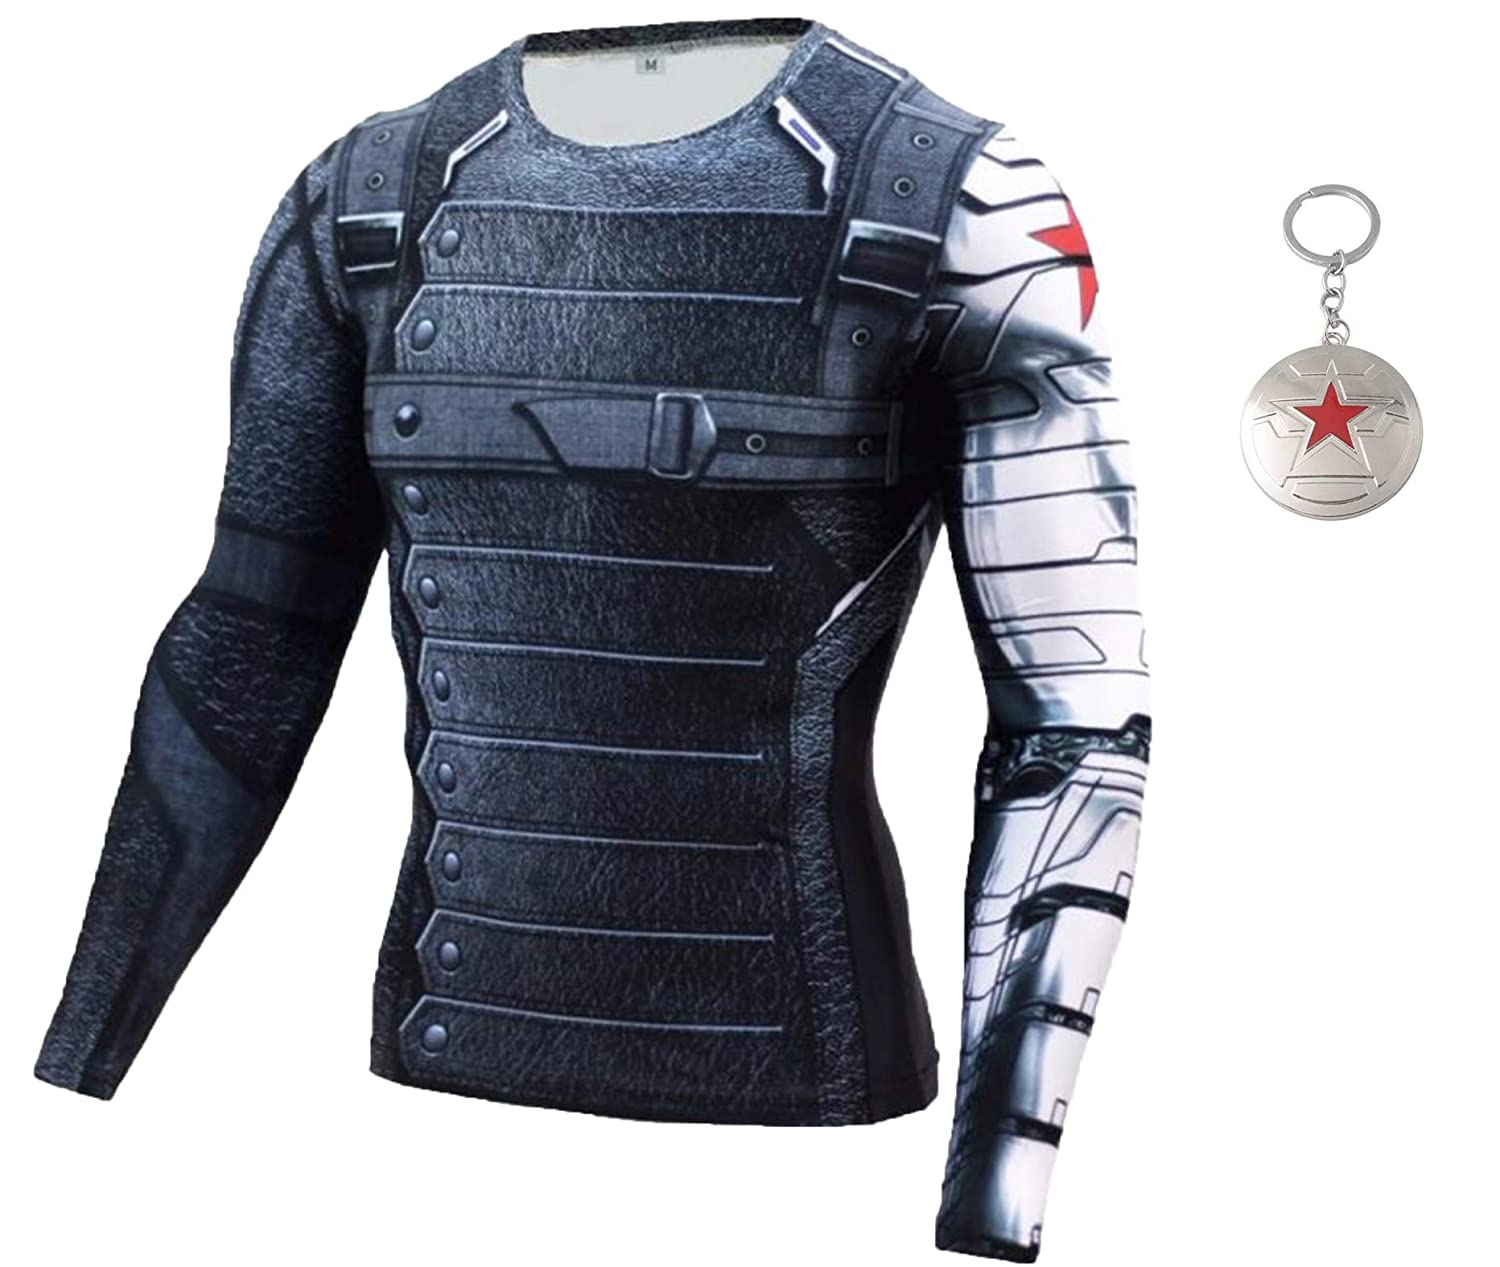 ec365ad42f614 1Bar Winter Soldier Compression Shirt Men's Workout Training Dri-Fit  Stretch Long Sleeve Gym Shirt Plus Free Keychain